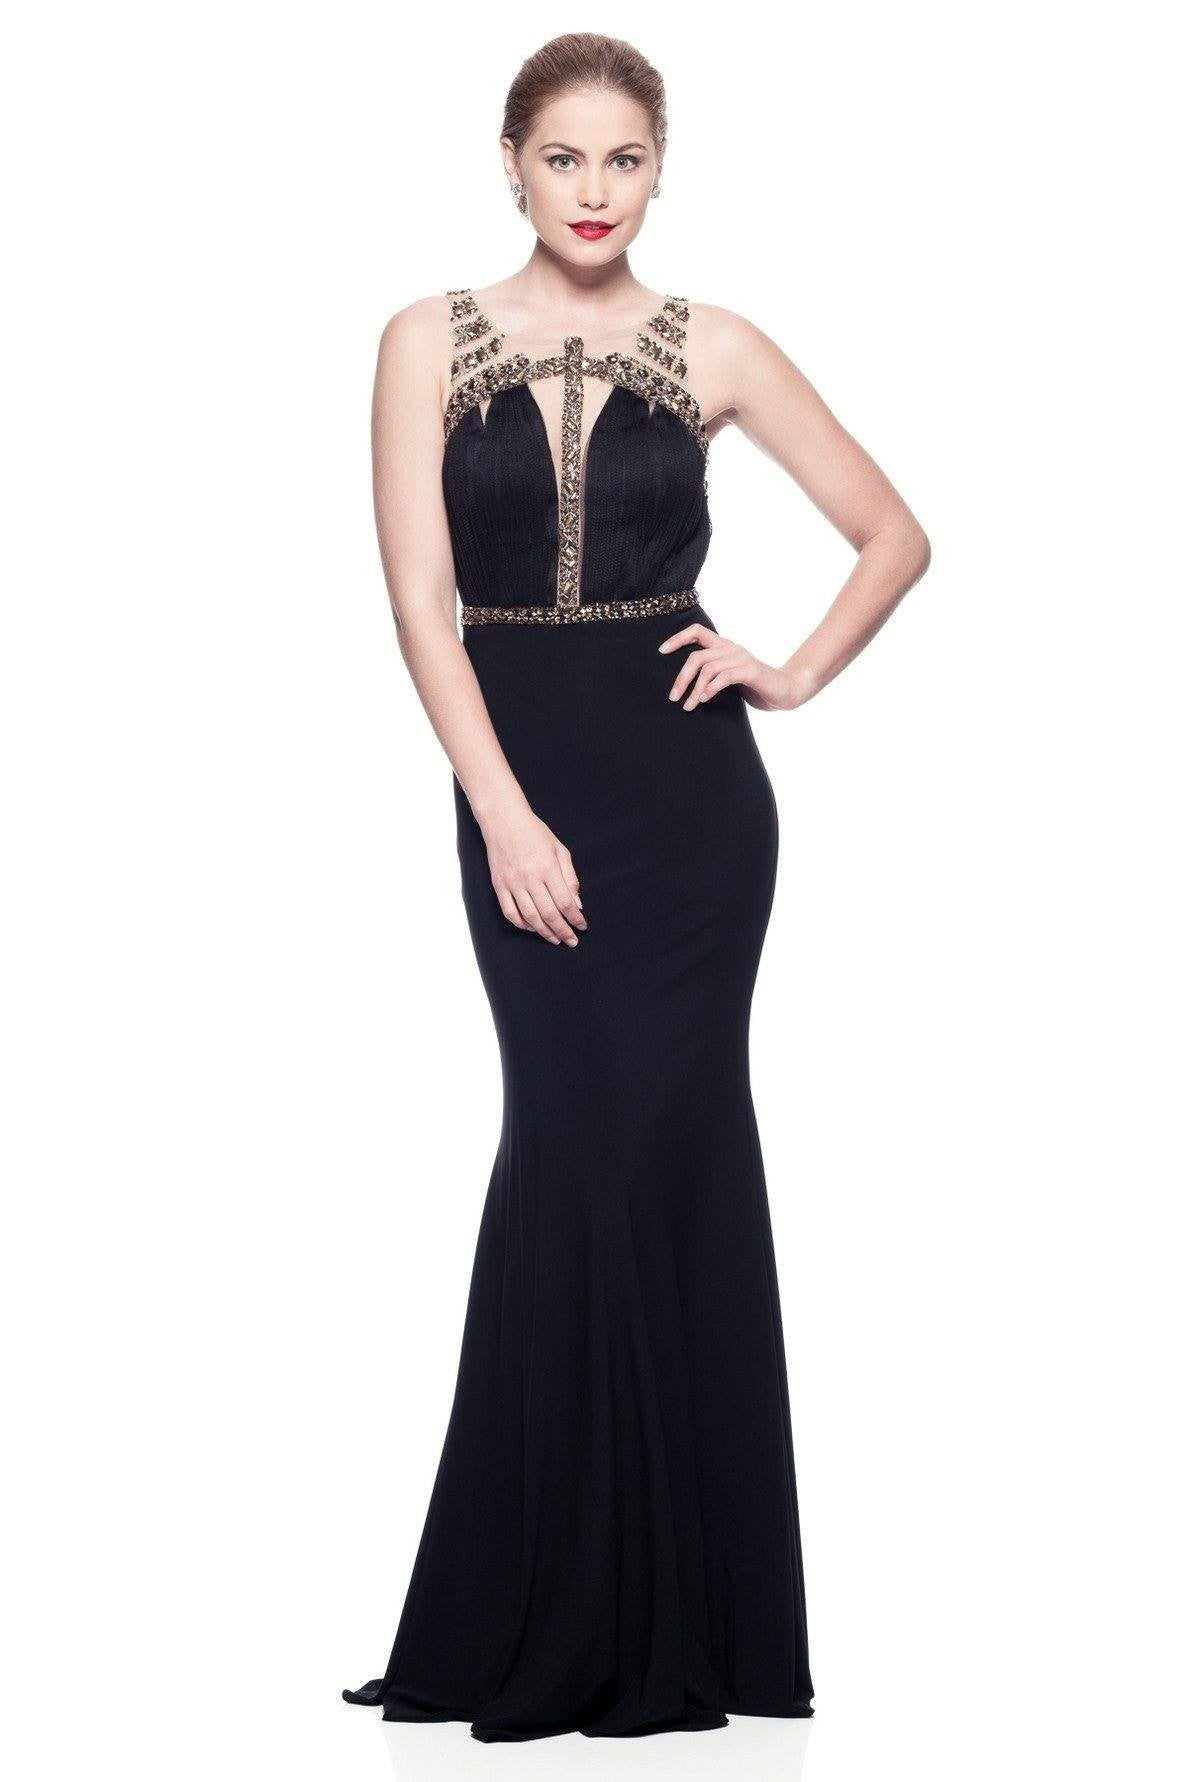 Black tie formal dress Bc#EB08259 – Simply Fab Dress